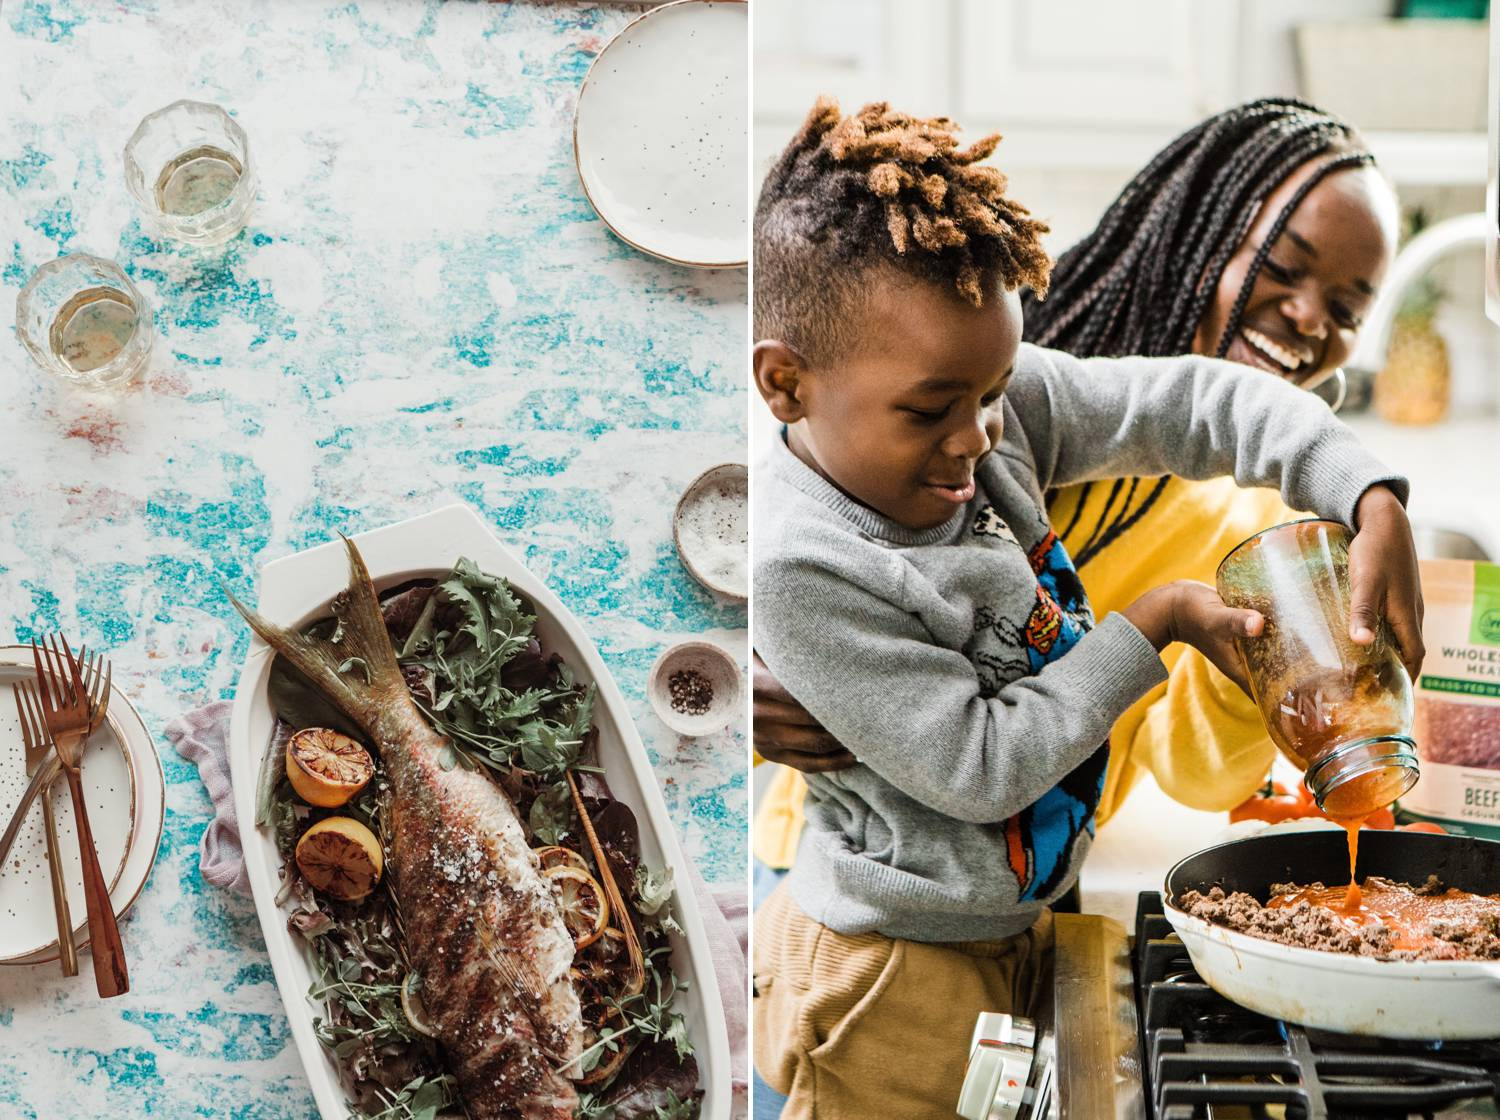 A baked fish is presented in a porcelain dish. A mom and her son pour sauce into a pan full of spaghetti meat.